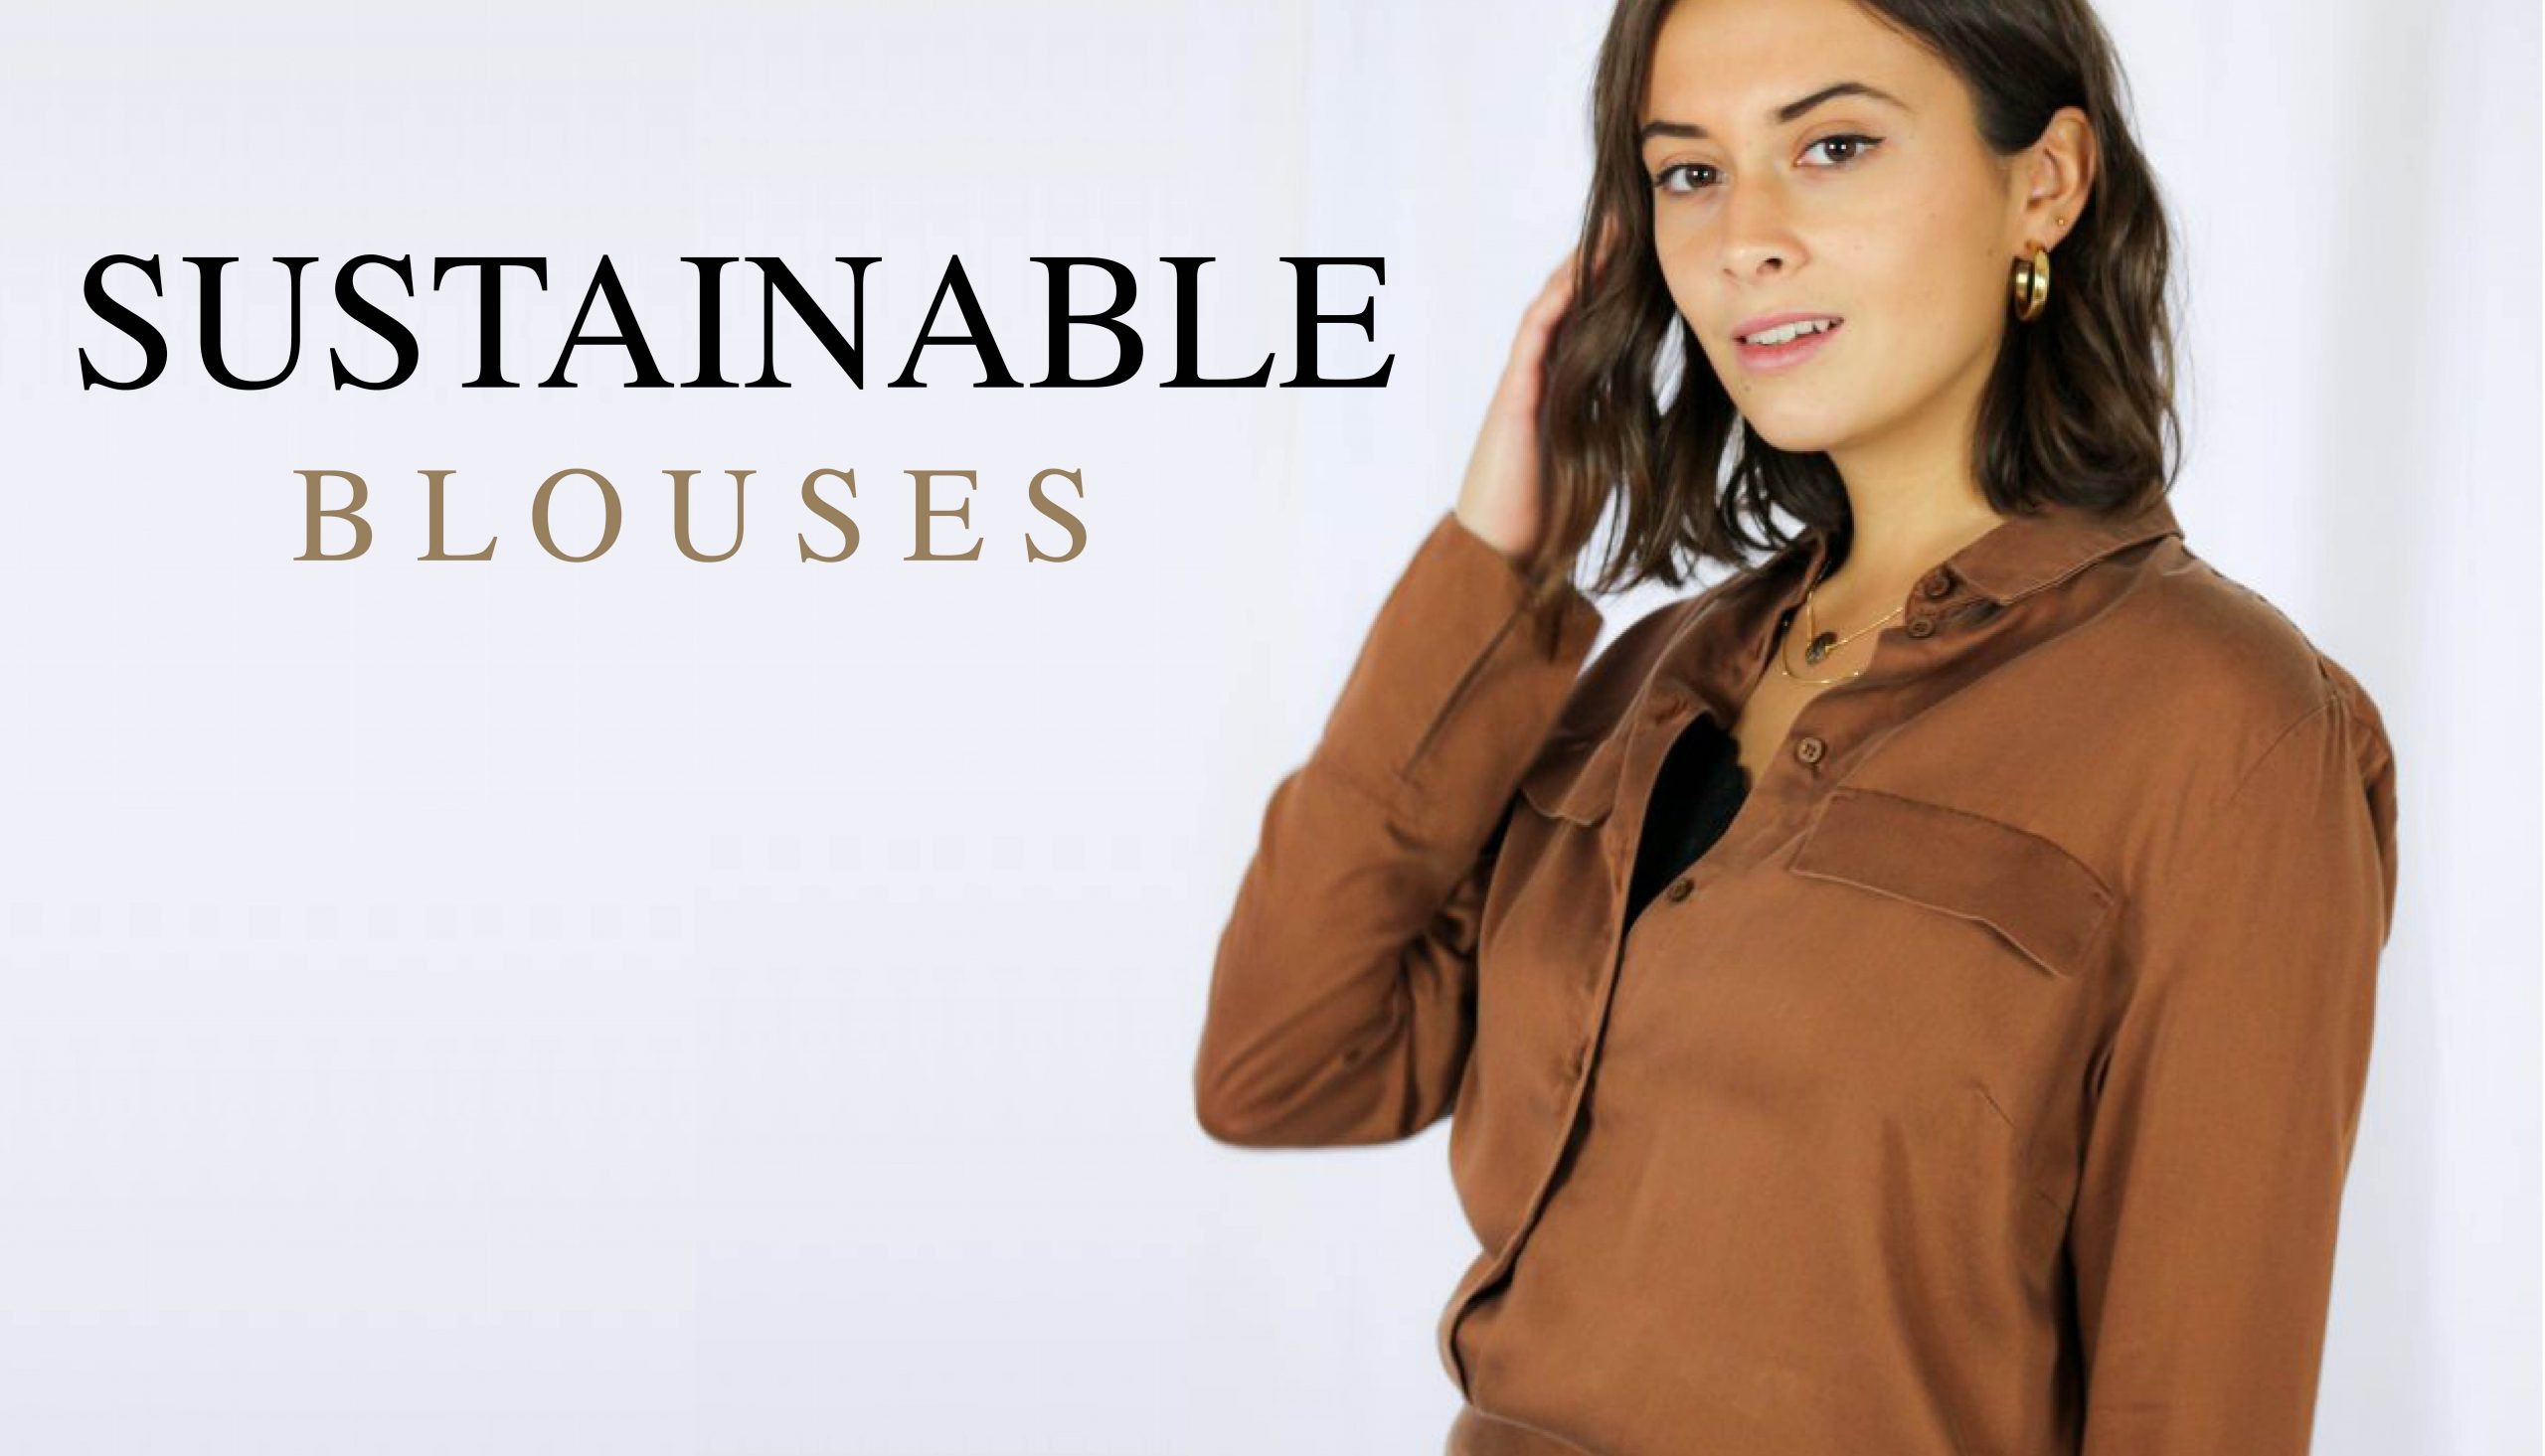 SUSTAINABLE BLOUSES